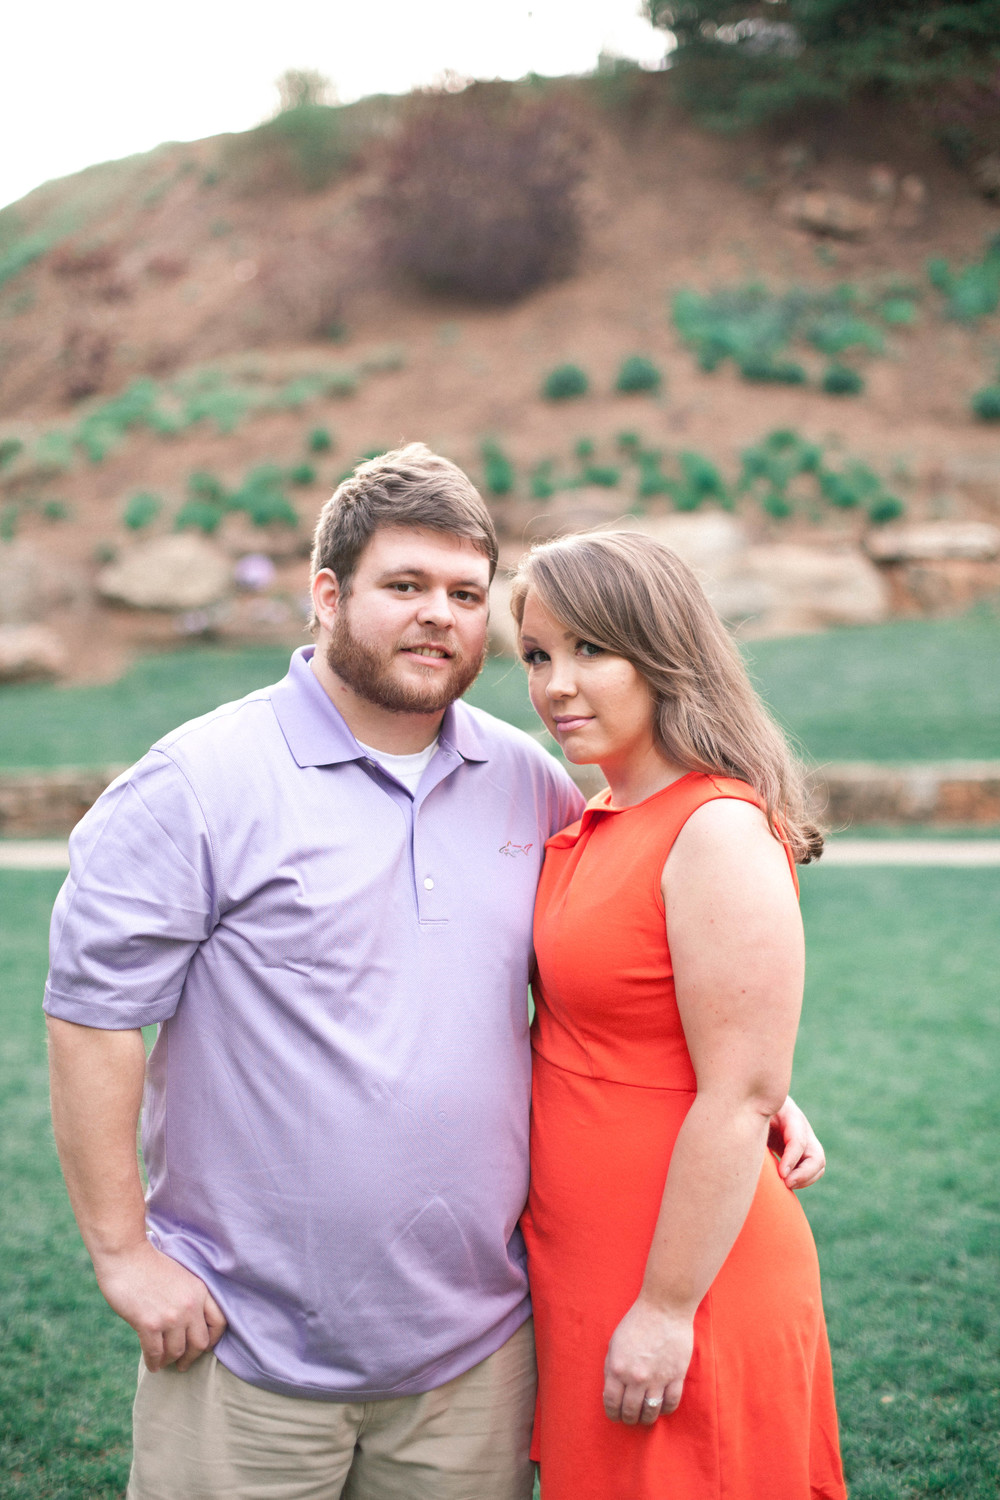 zach_gabbie_engagement_poured_out_photography-41.jpg